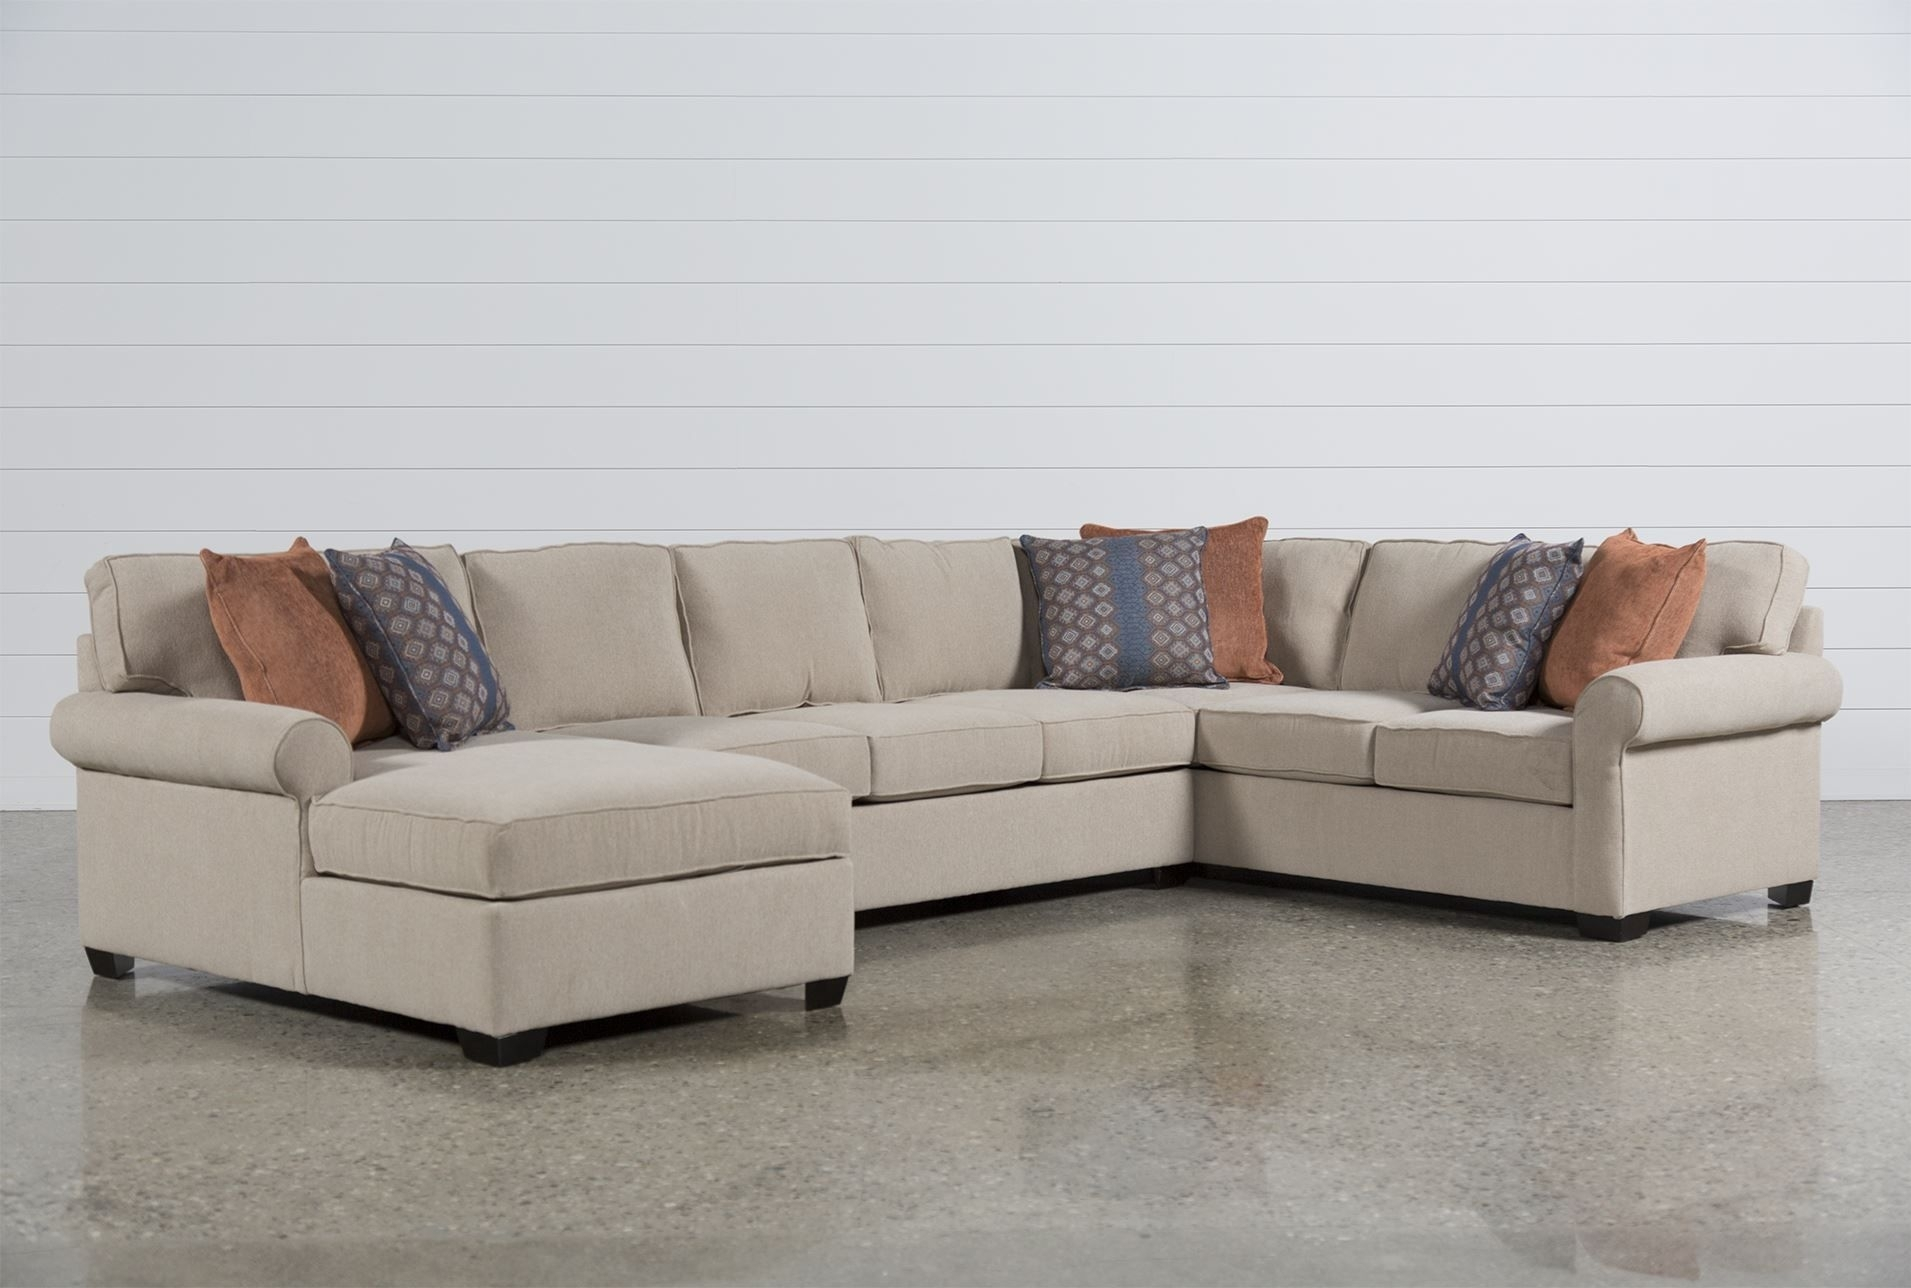 Camilla 3 Piece Sectional W/laf Chaise | Couches | Pinterest with Glamour Ii 3 Piece Sectionals (Image 5 of 30)